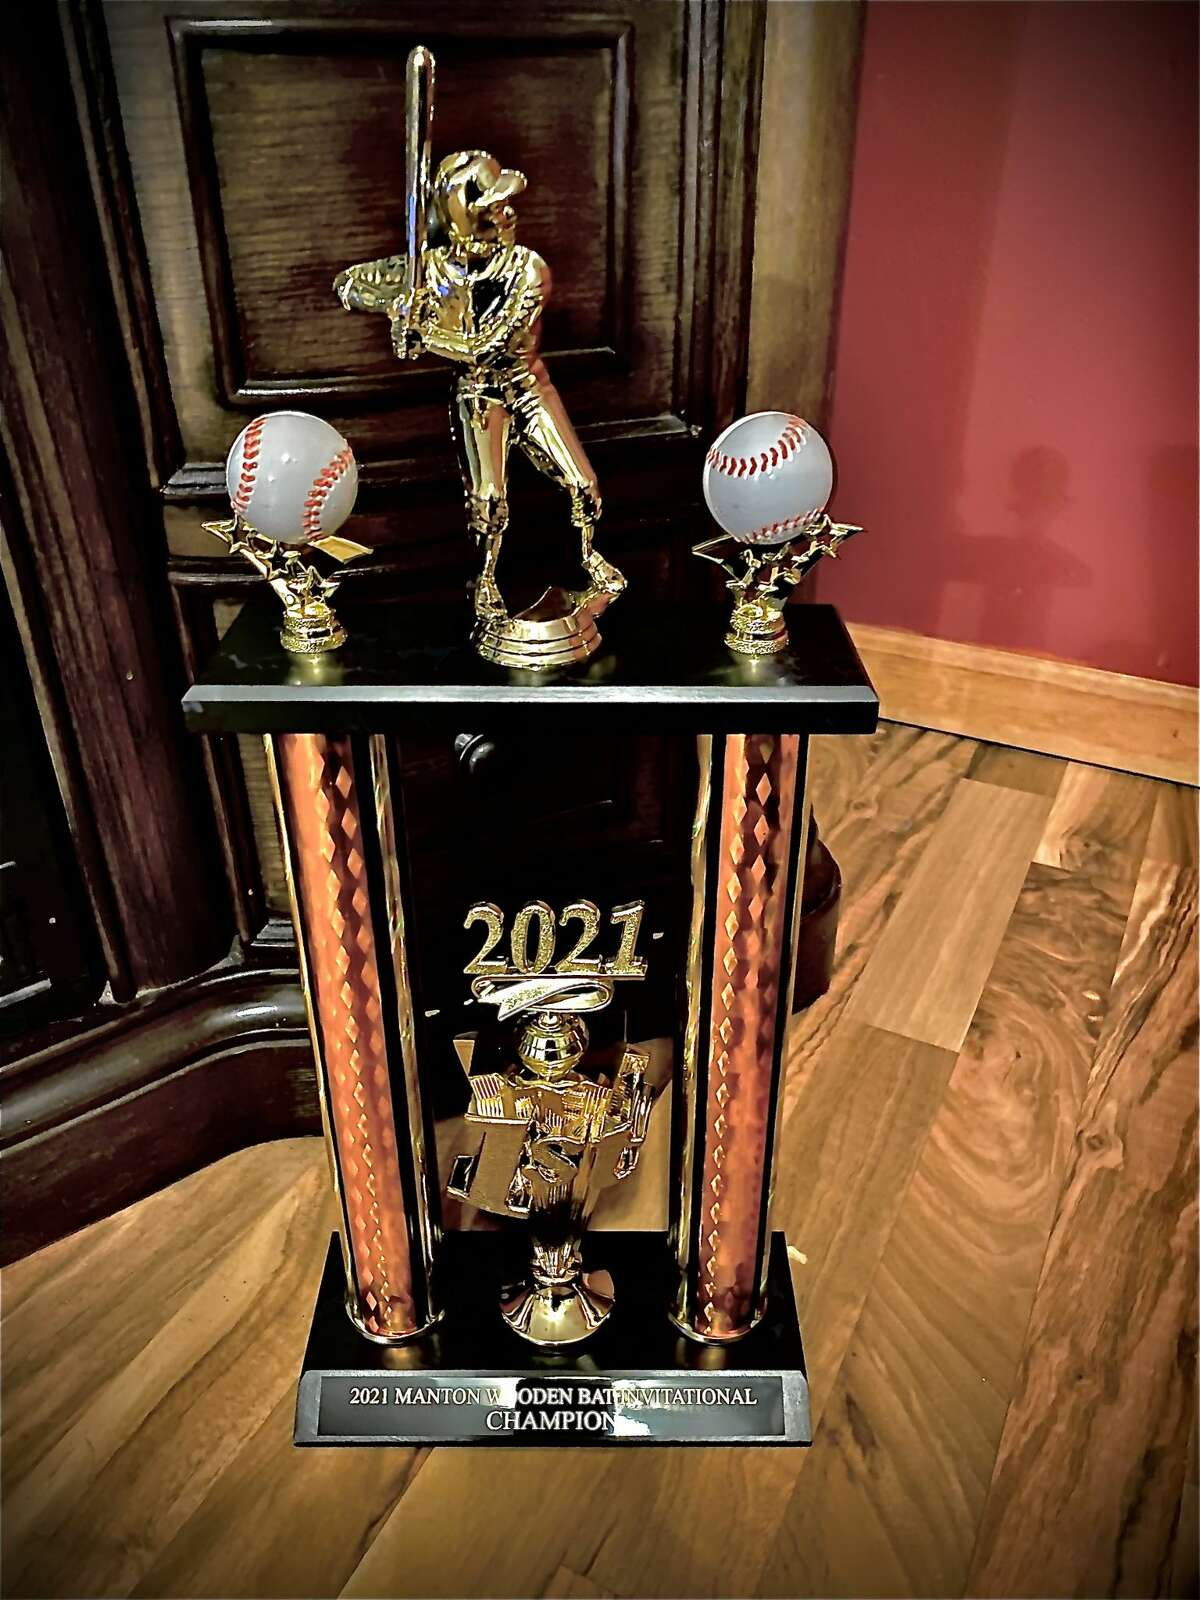 Frankfort took home the championship trophy from the Manton Wooden Bat Invitational on Saturday.